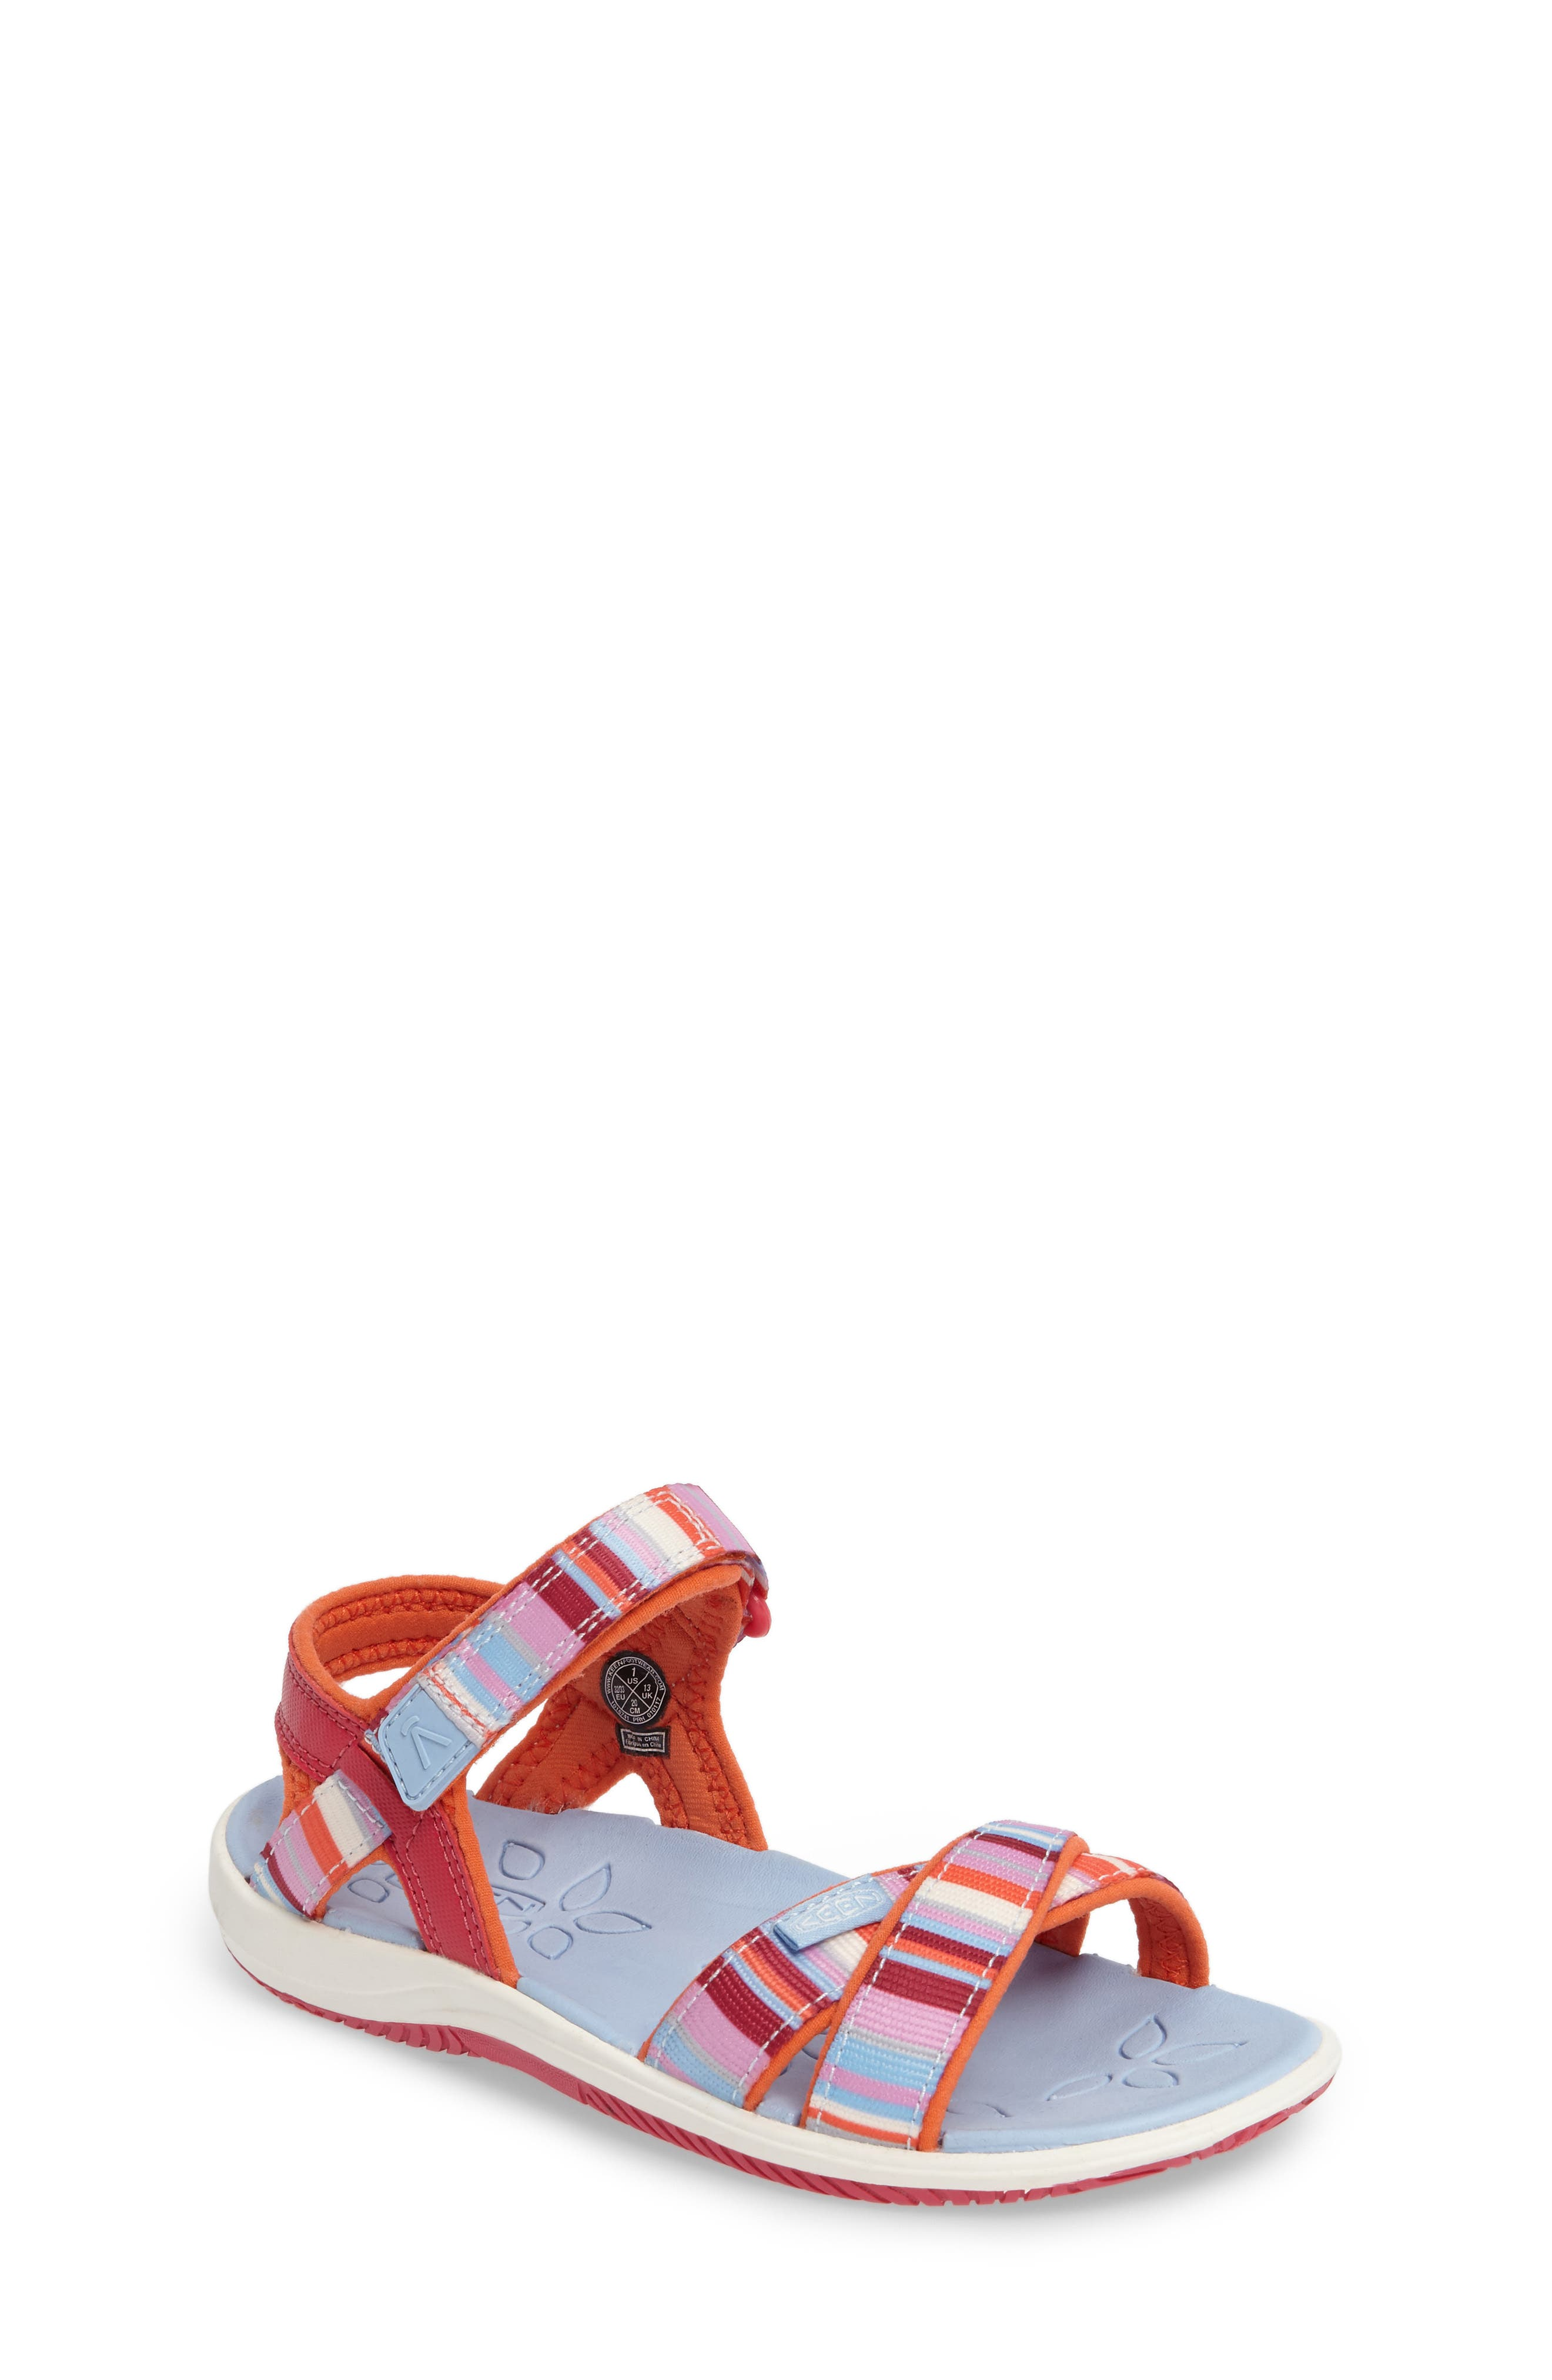 'Phoebe' Sandal,                             Main thumbnail 1, color,                             Bright Rose Raya